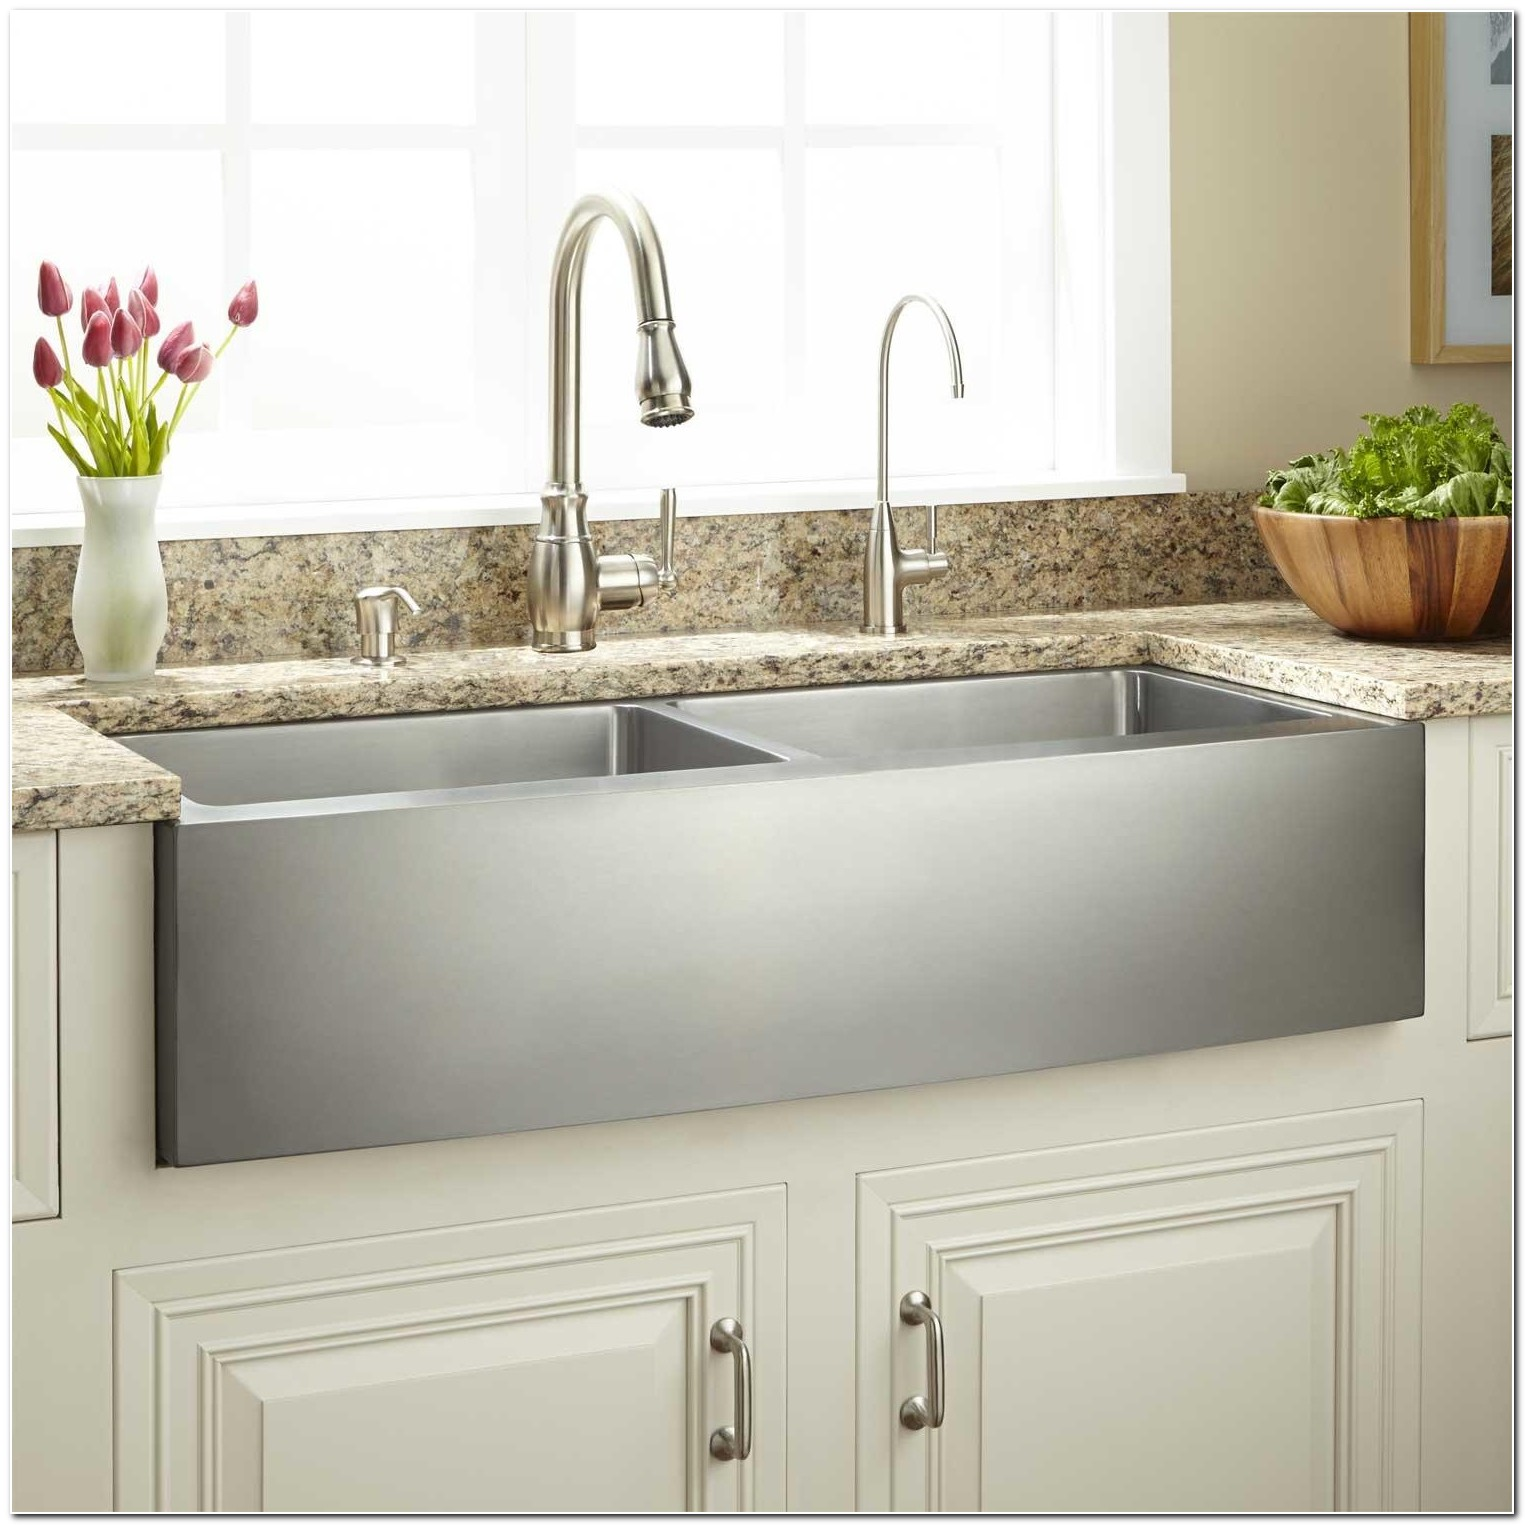 Apron Front Sink Stainless Steel